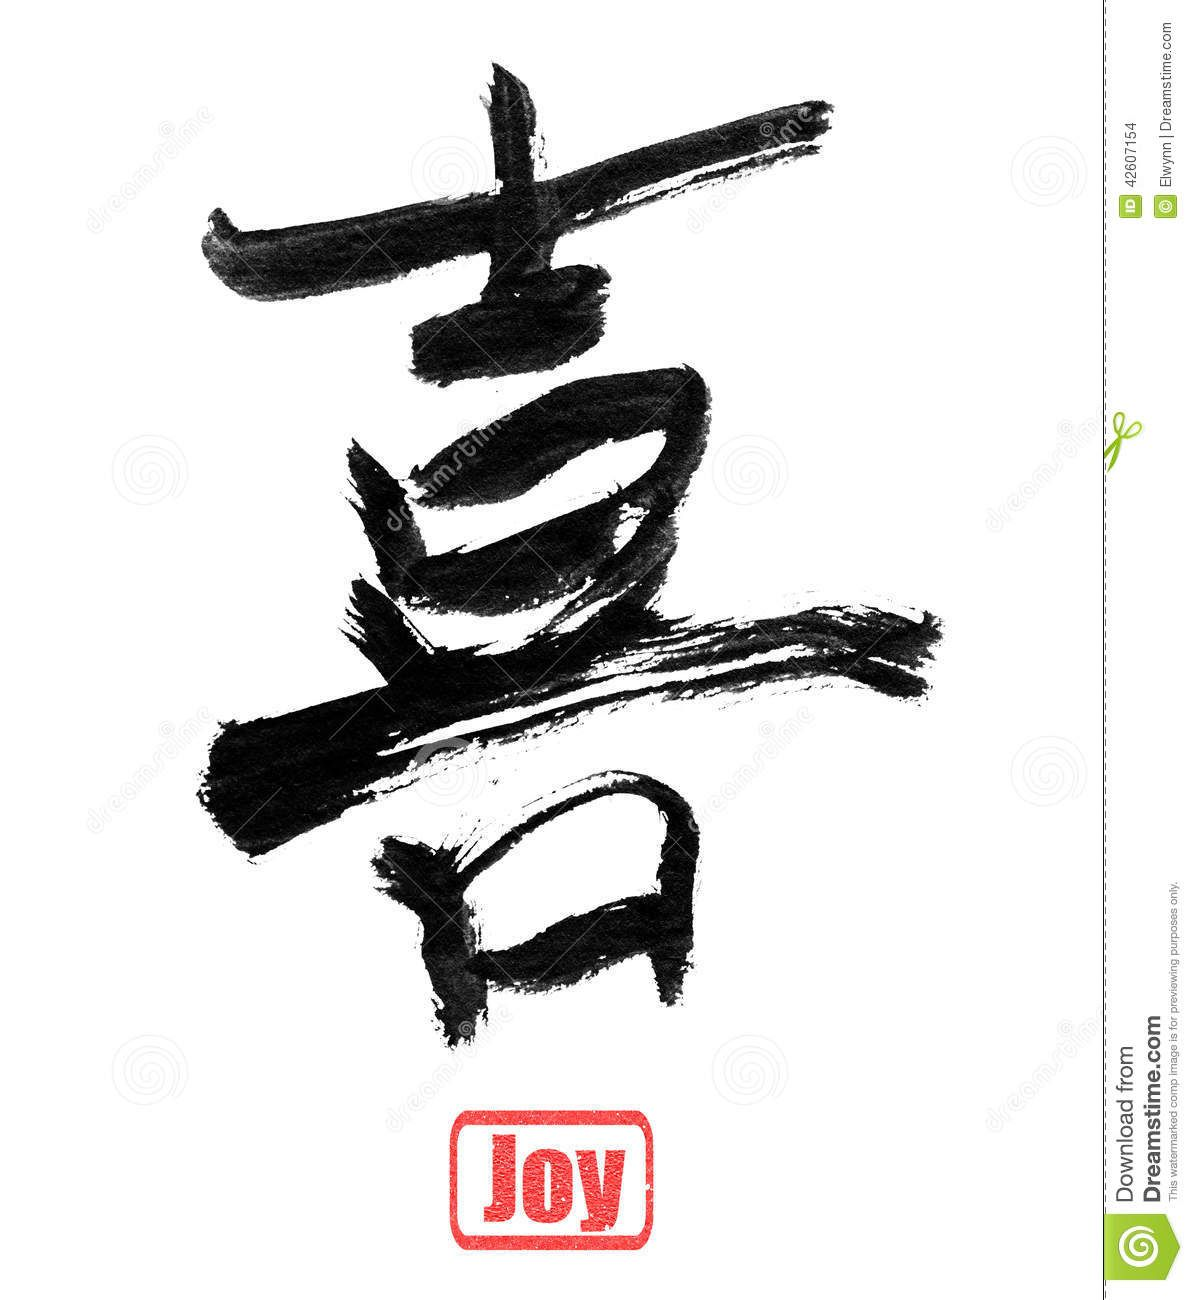 Calligraphy Word Joy Download From Over 27 Million High Quality